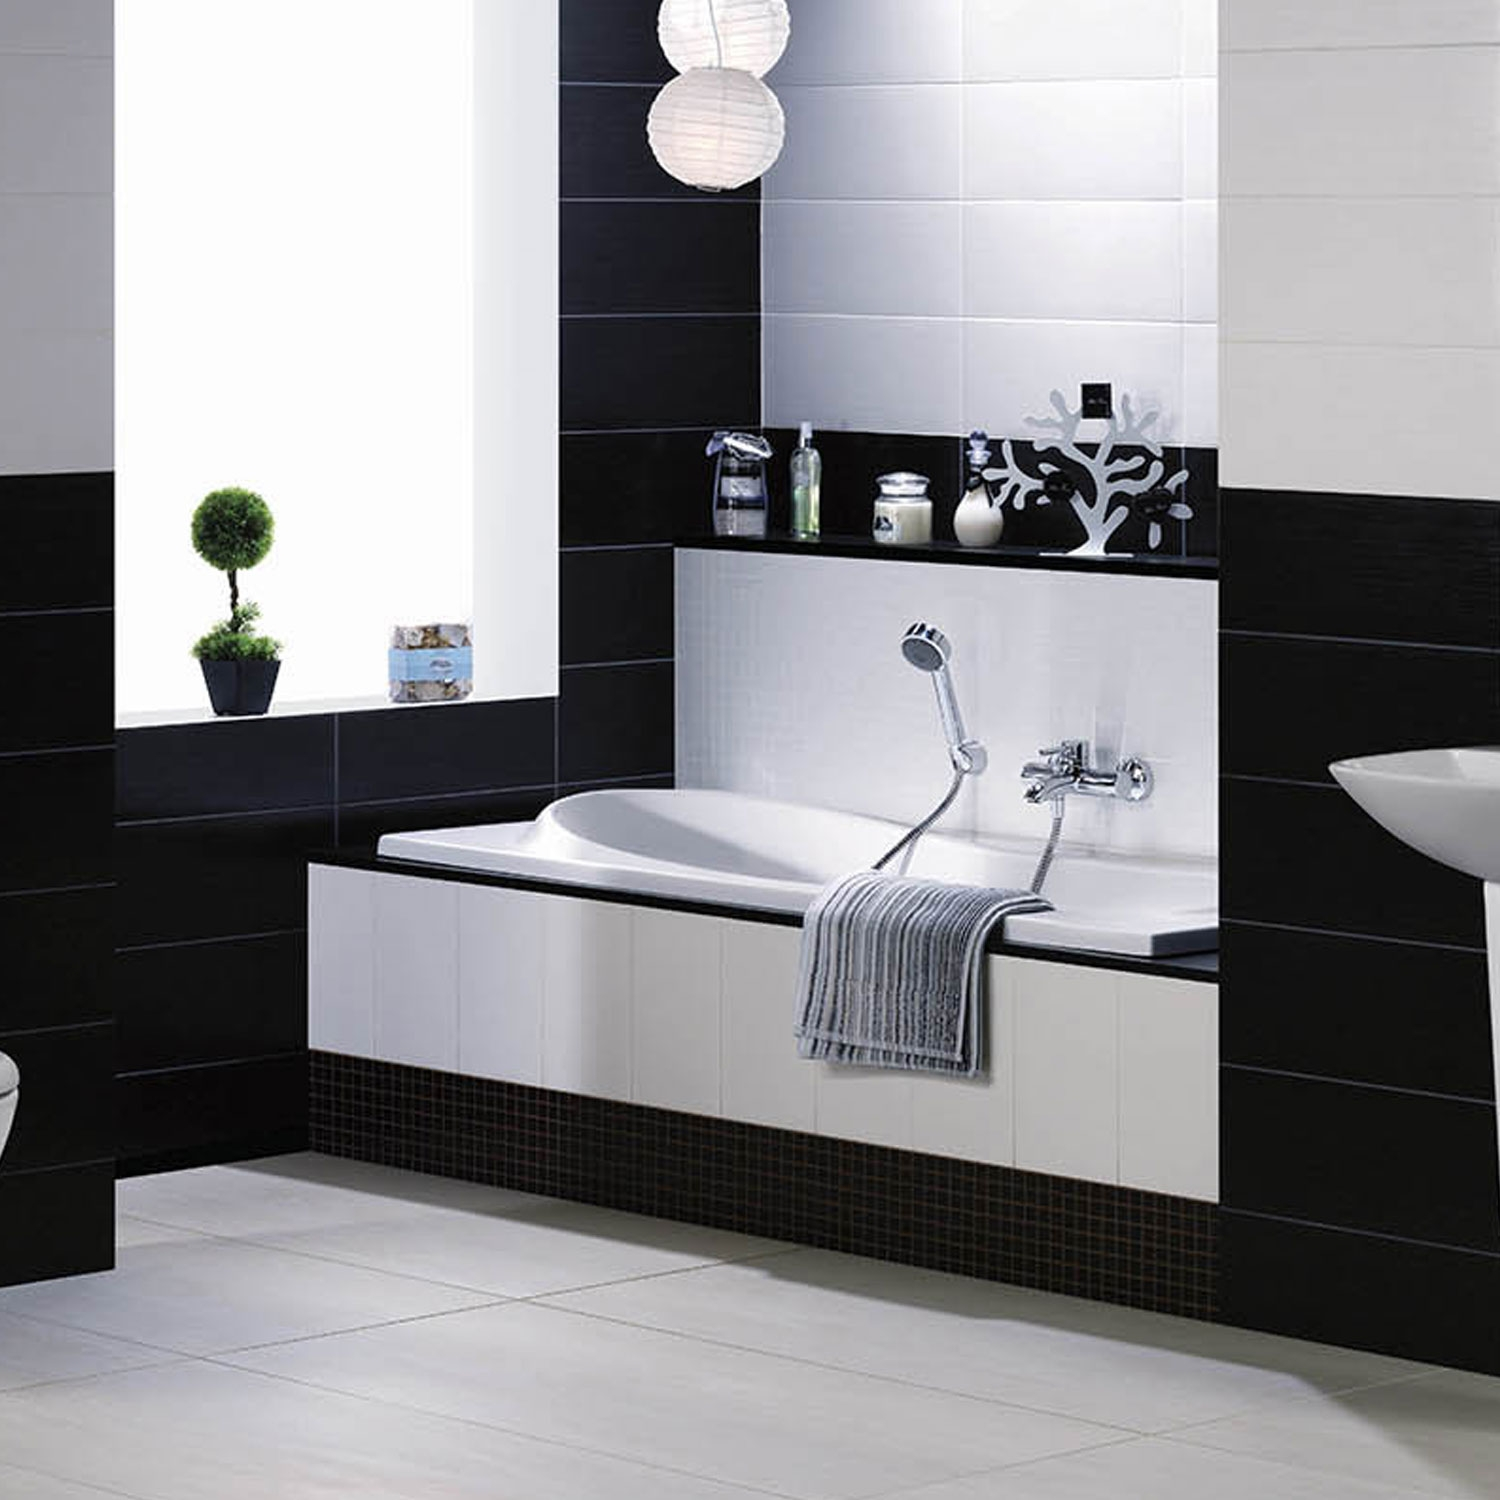 Verona Reserva Single Ended Rectangular Bath 1700mm x 800mm - 0 Tap Hole-1